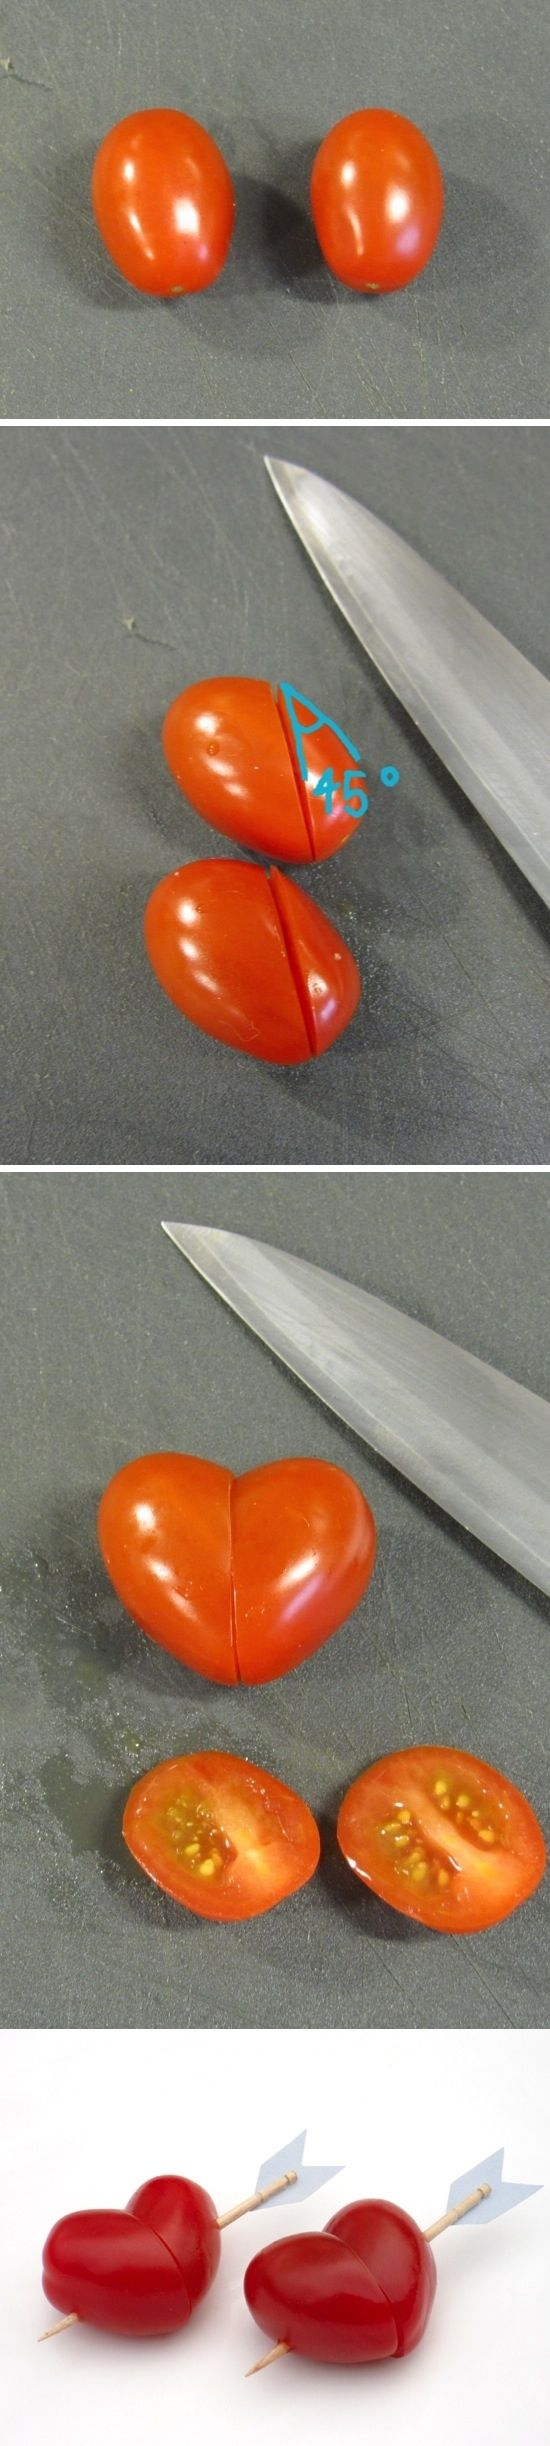 Staying at home to enjoy a home-cooked candlelight meal with your sweetie on Valentines Day? Take a minute to make Heart-Shaped Grape Tomato Hearts to drop into your salad!